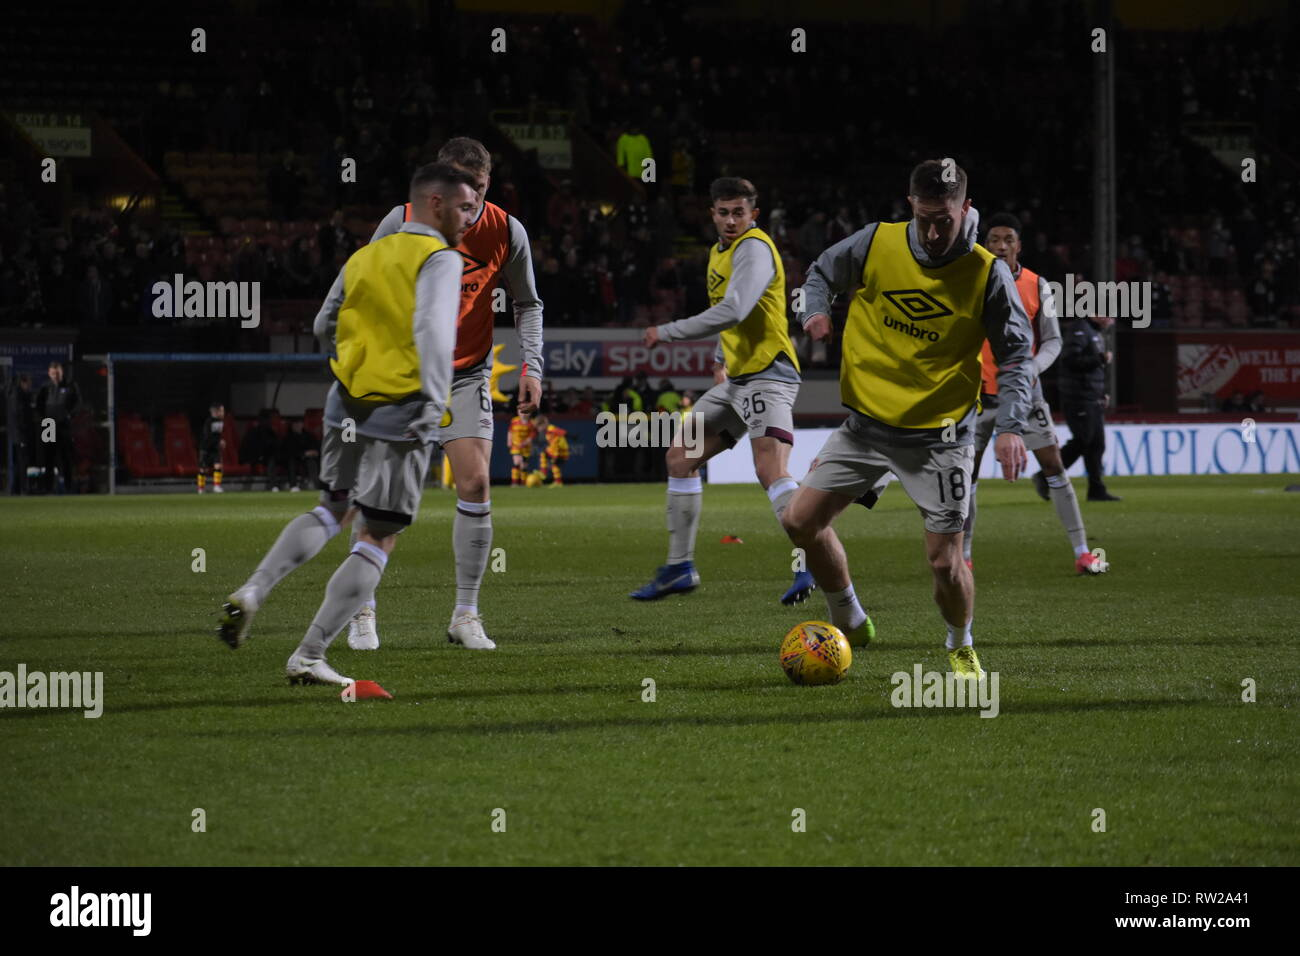 firhill, Maryhill, Glasgow, Scotland 4th march 2019 Hearts players warm up for the Scottish cup match against partick thistle - Stock Image